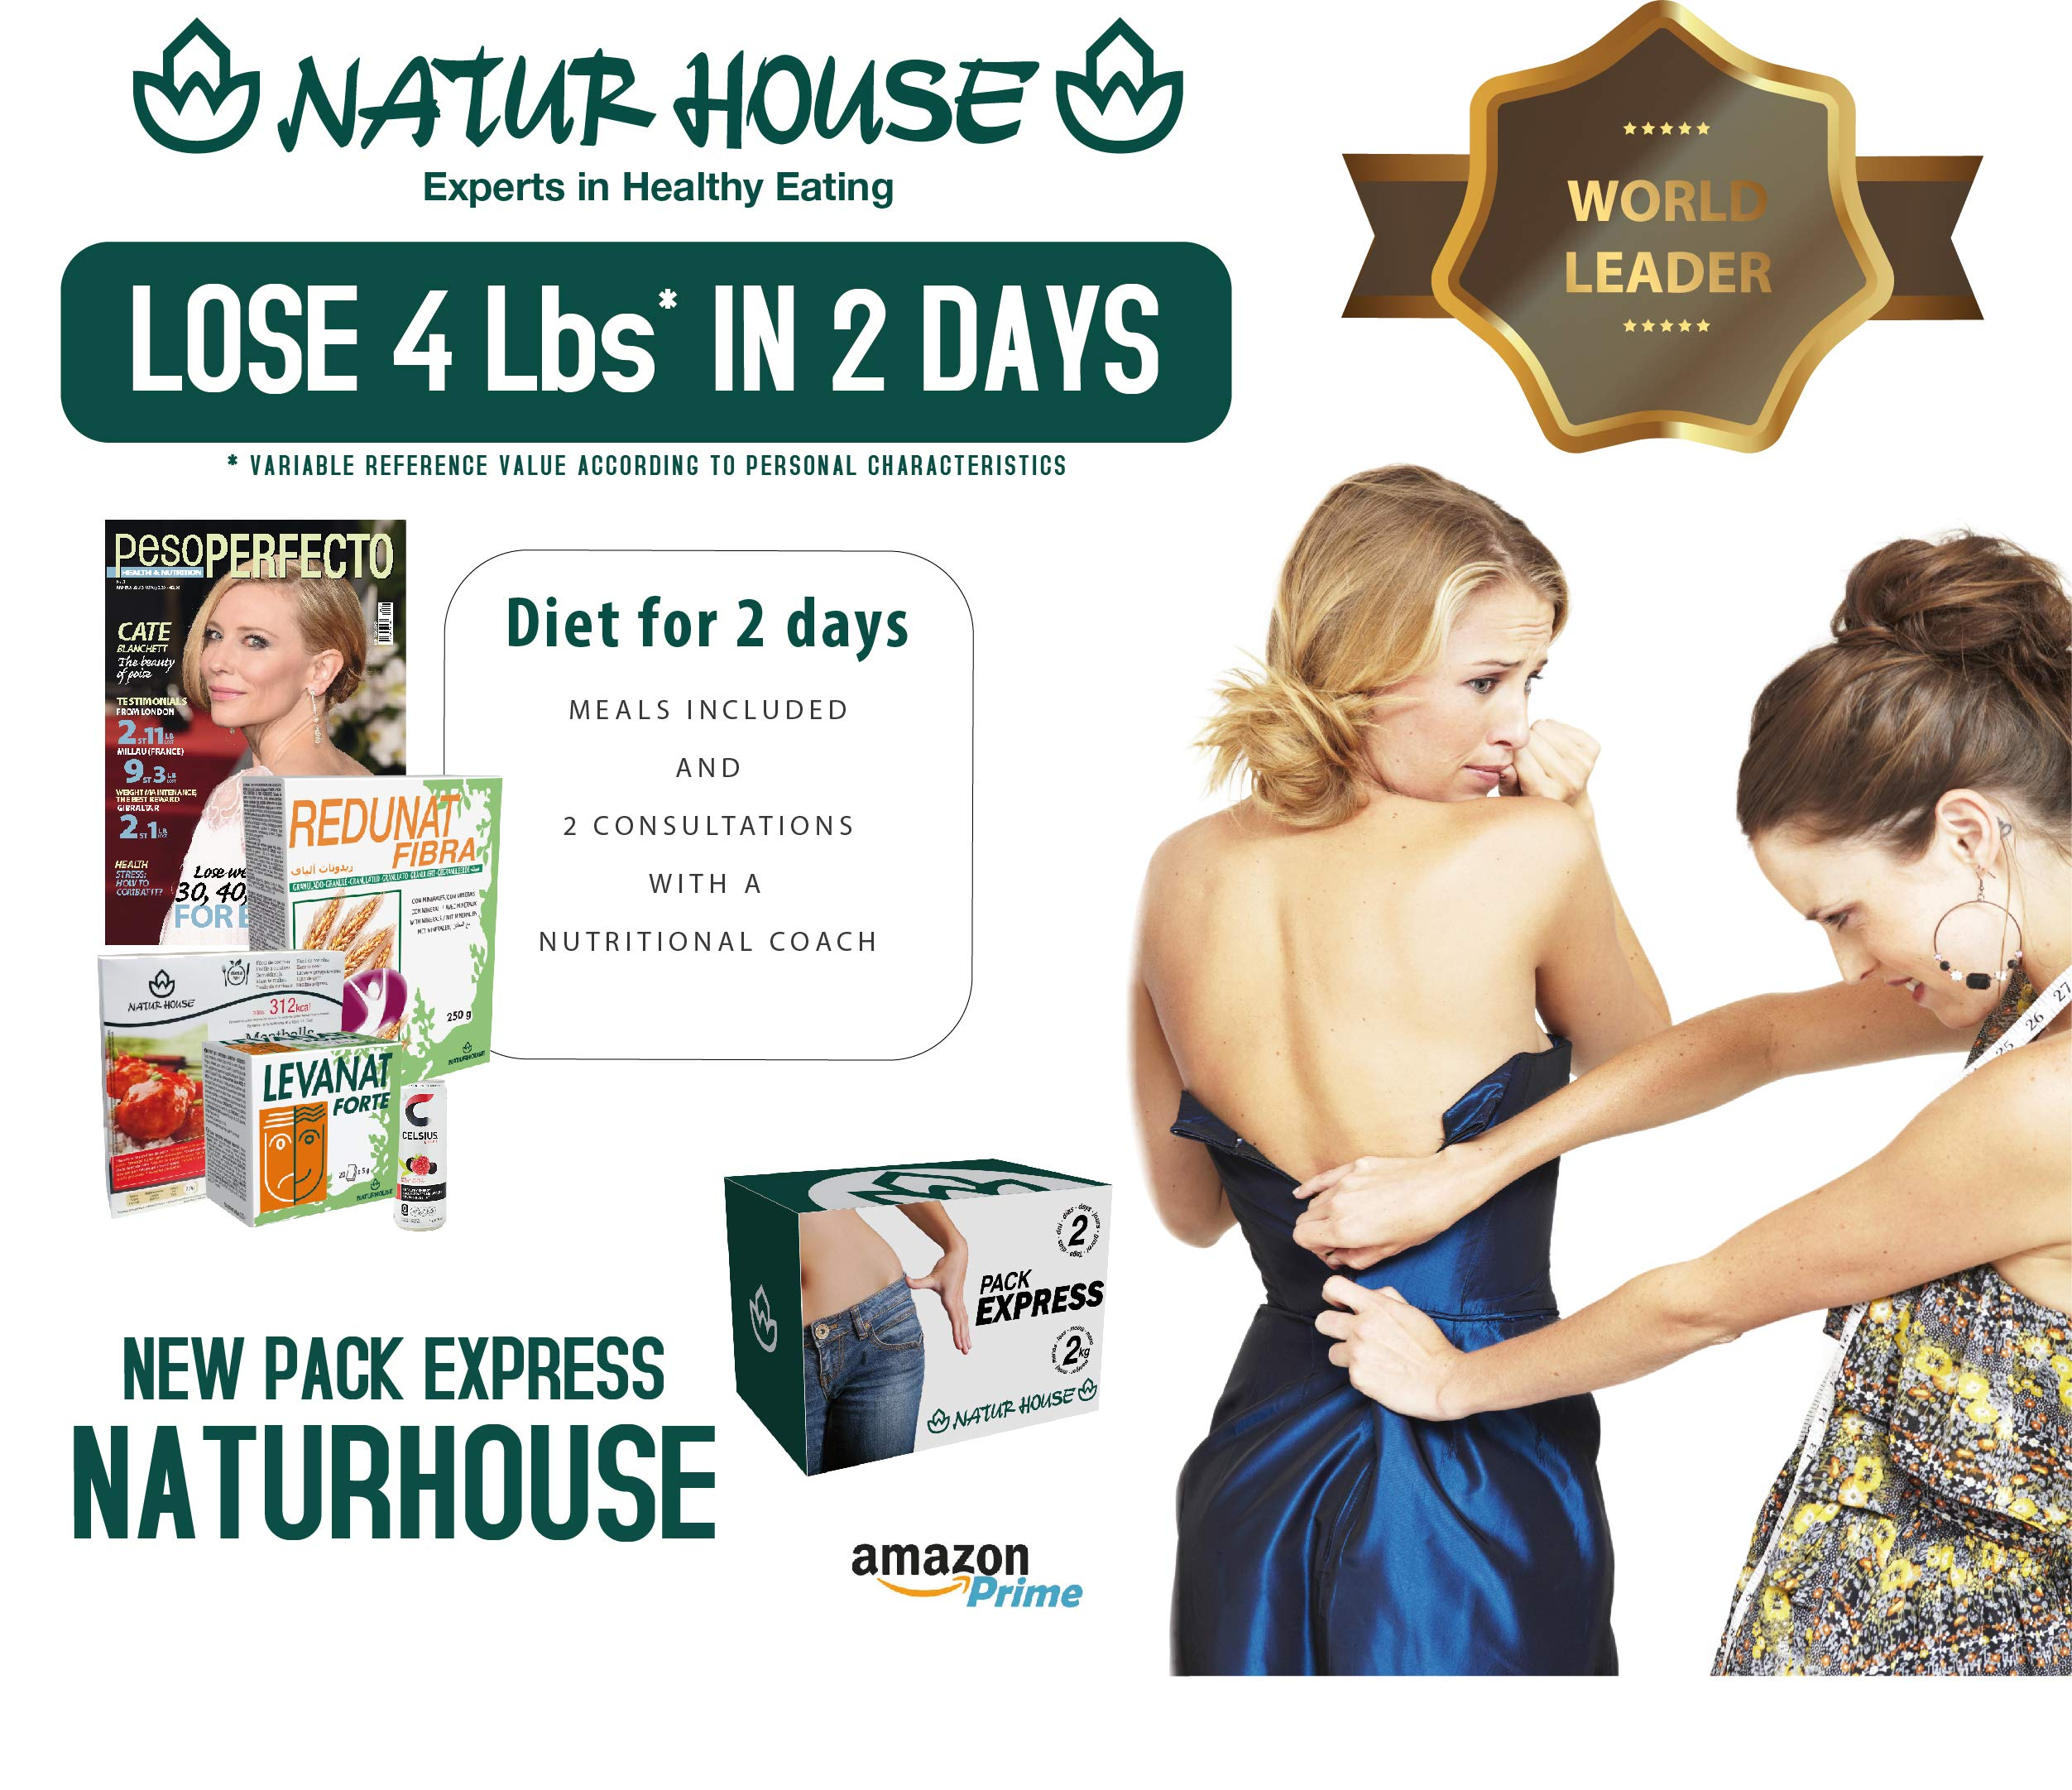 Naturhouse Pack Express - Complete 2 Days Weight Loss Plan - Comes with 4 Meals, 2 Weight Loss Drinks, Fiber, Supplement and More by Naturhouse (Image #3)